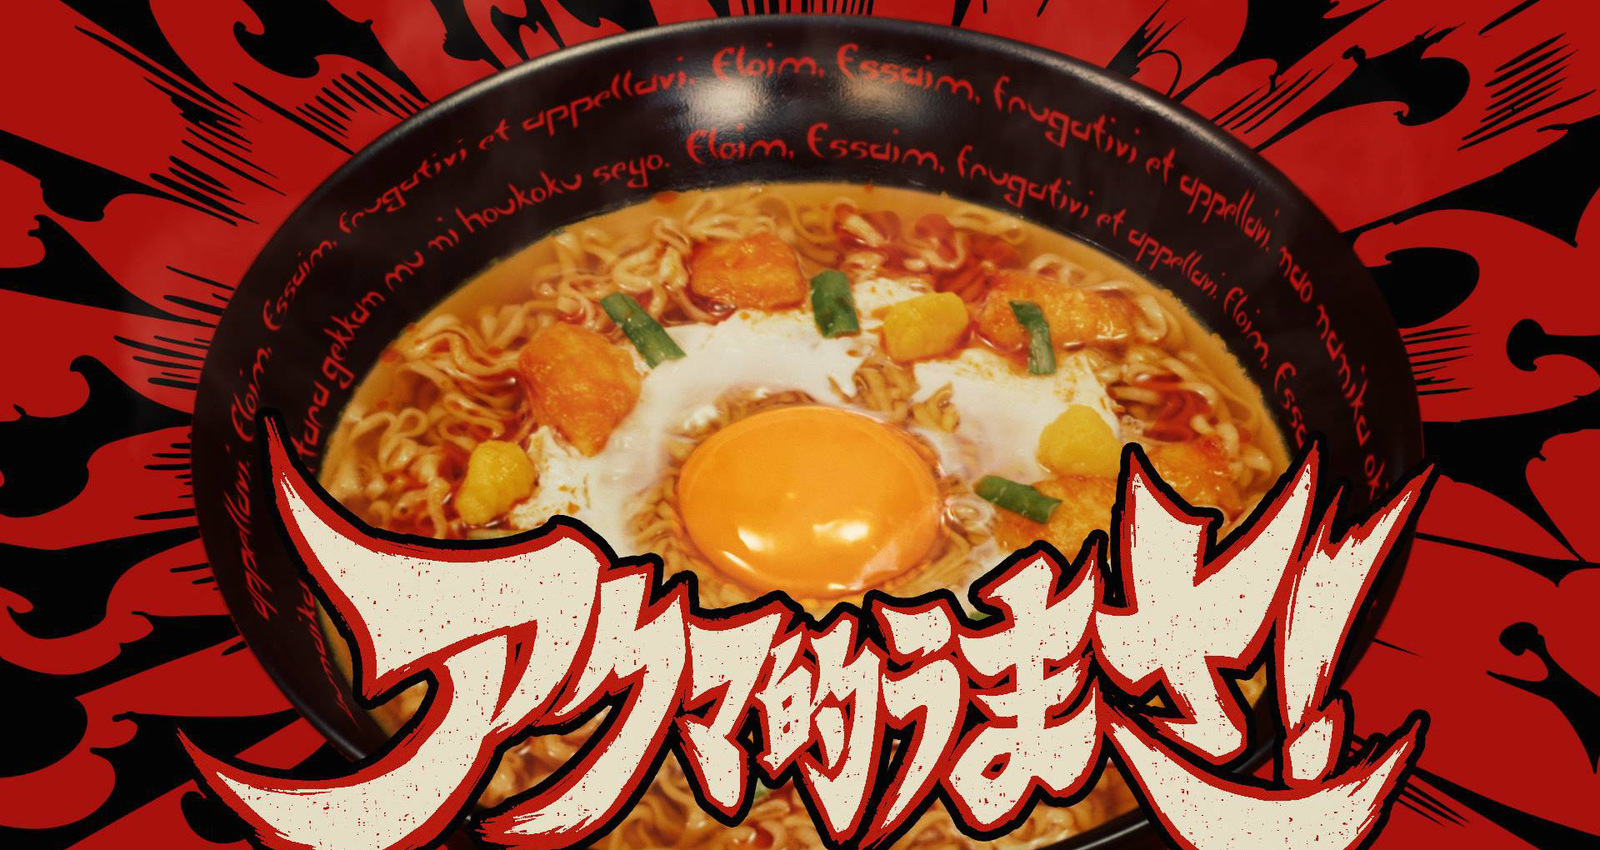 Akuma no Kimura (Demonically Spicy Ramen)